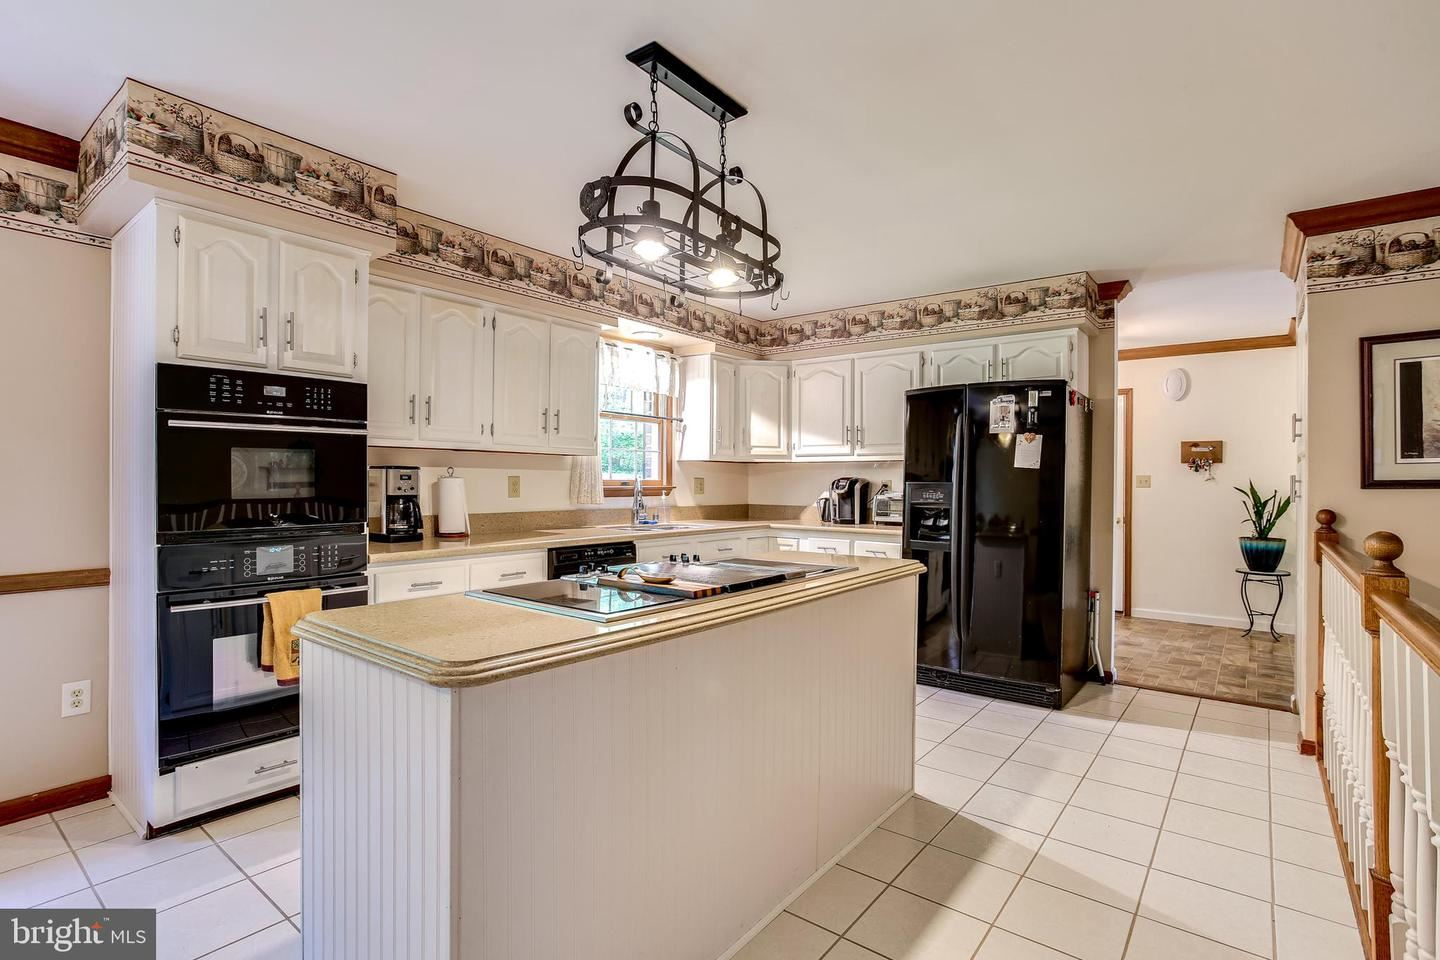 2385 GLOVER DR, Mount Airy, MD 21771 - MLS#: MDCR203814